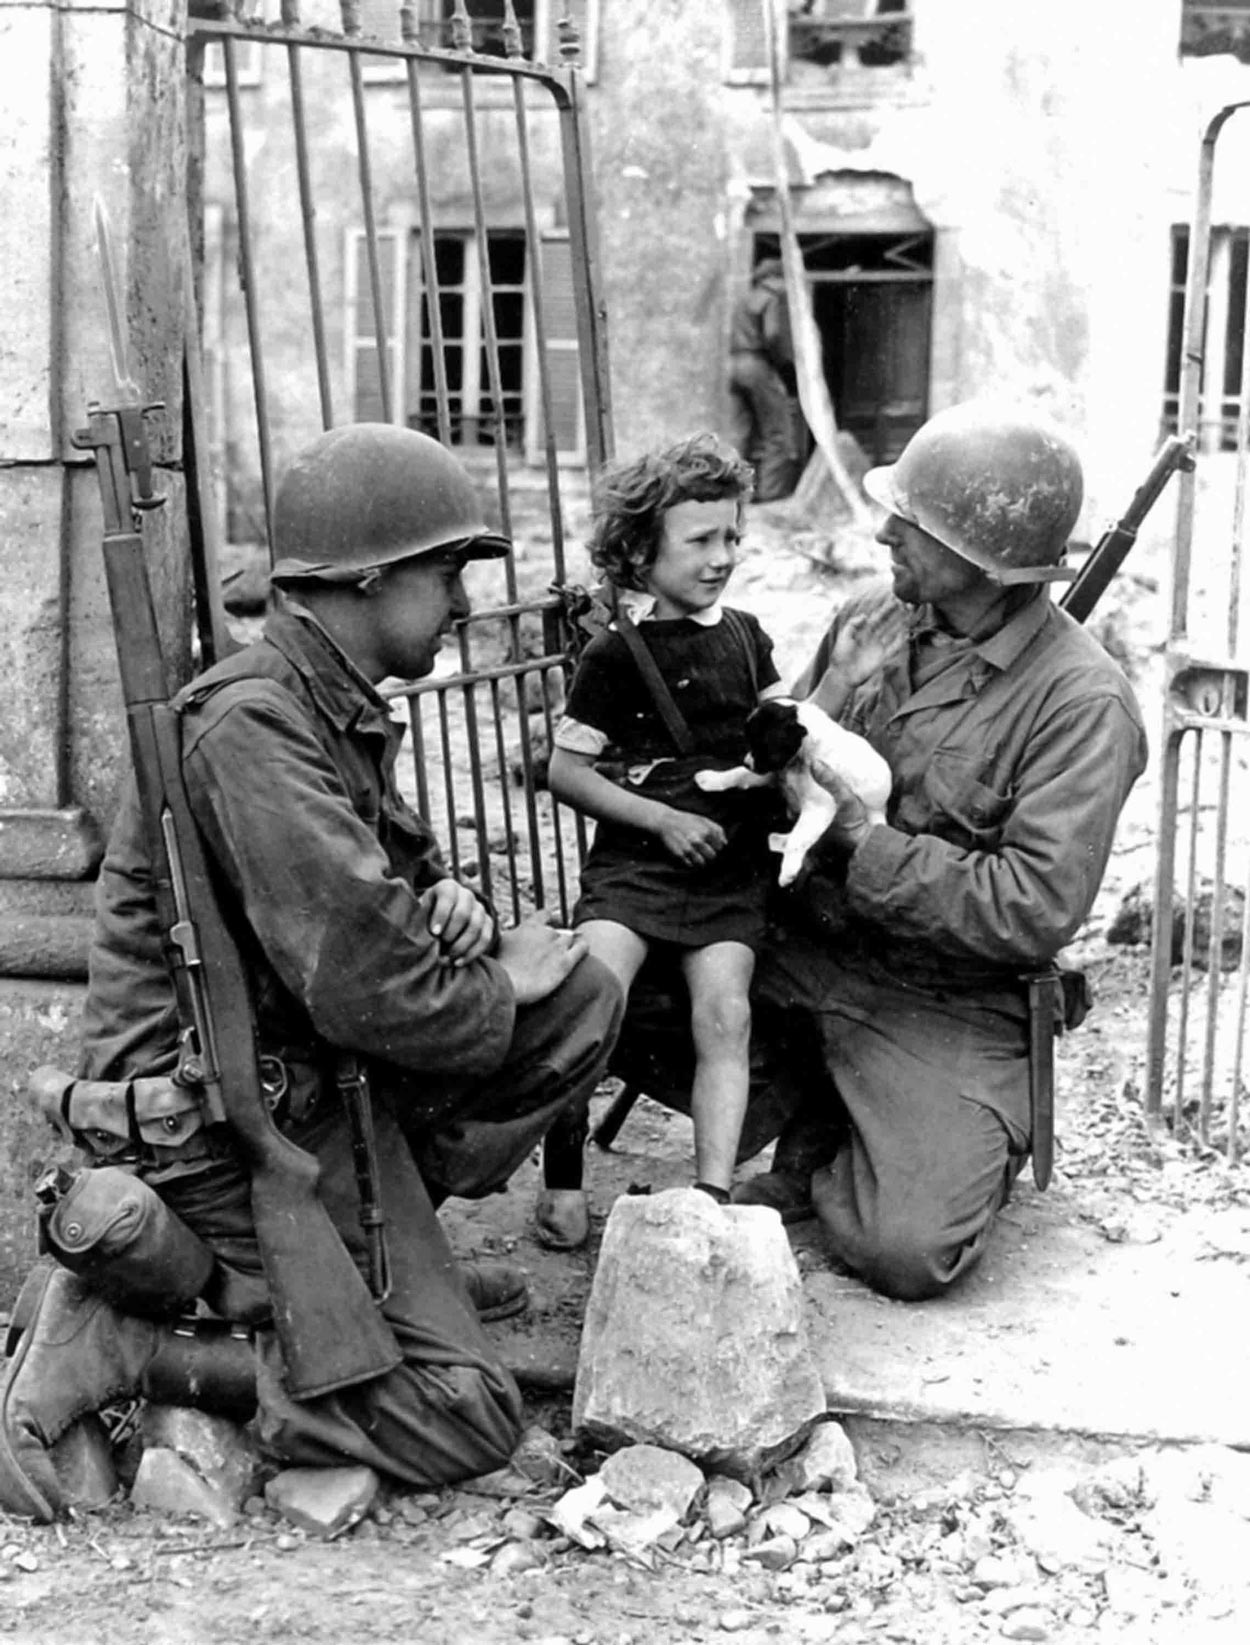 Media covering the war showed soldiers comforting children, as seen here, but also romanticized soldiers' relationships with French women.